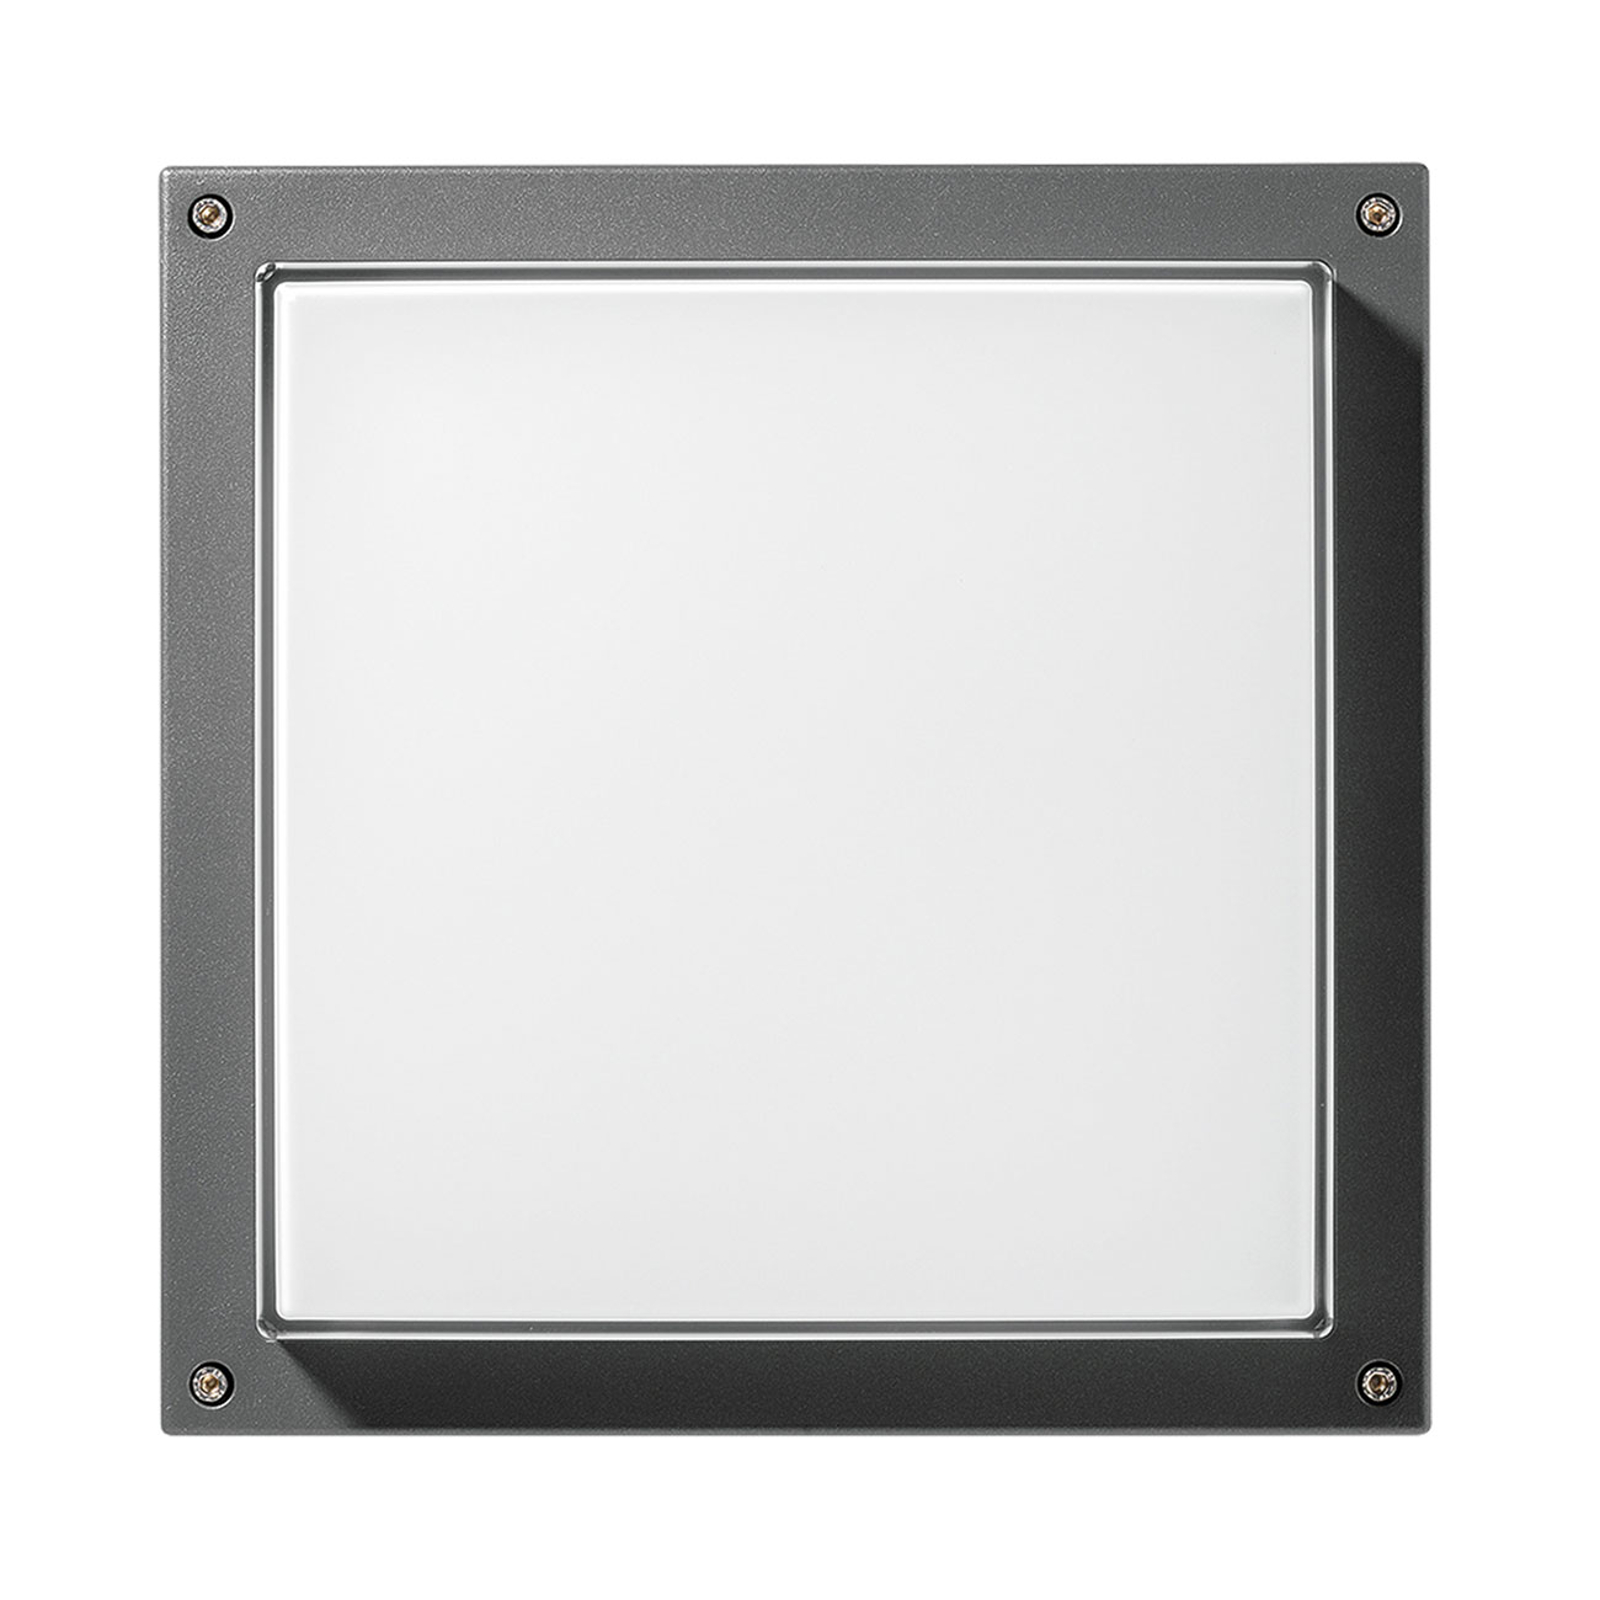 Applique LED Bliz Square 40, 3 000 K, anthracite